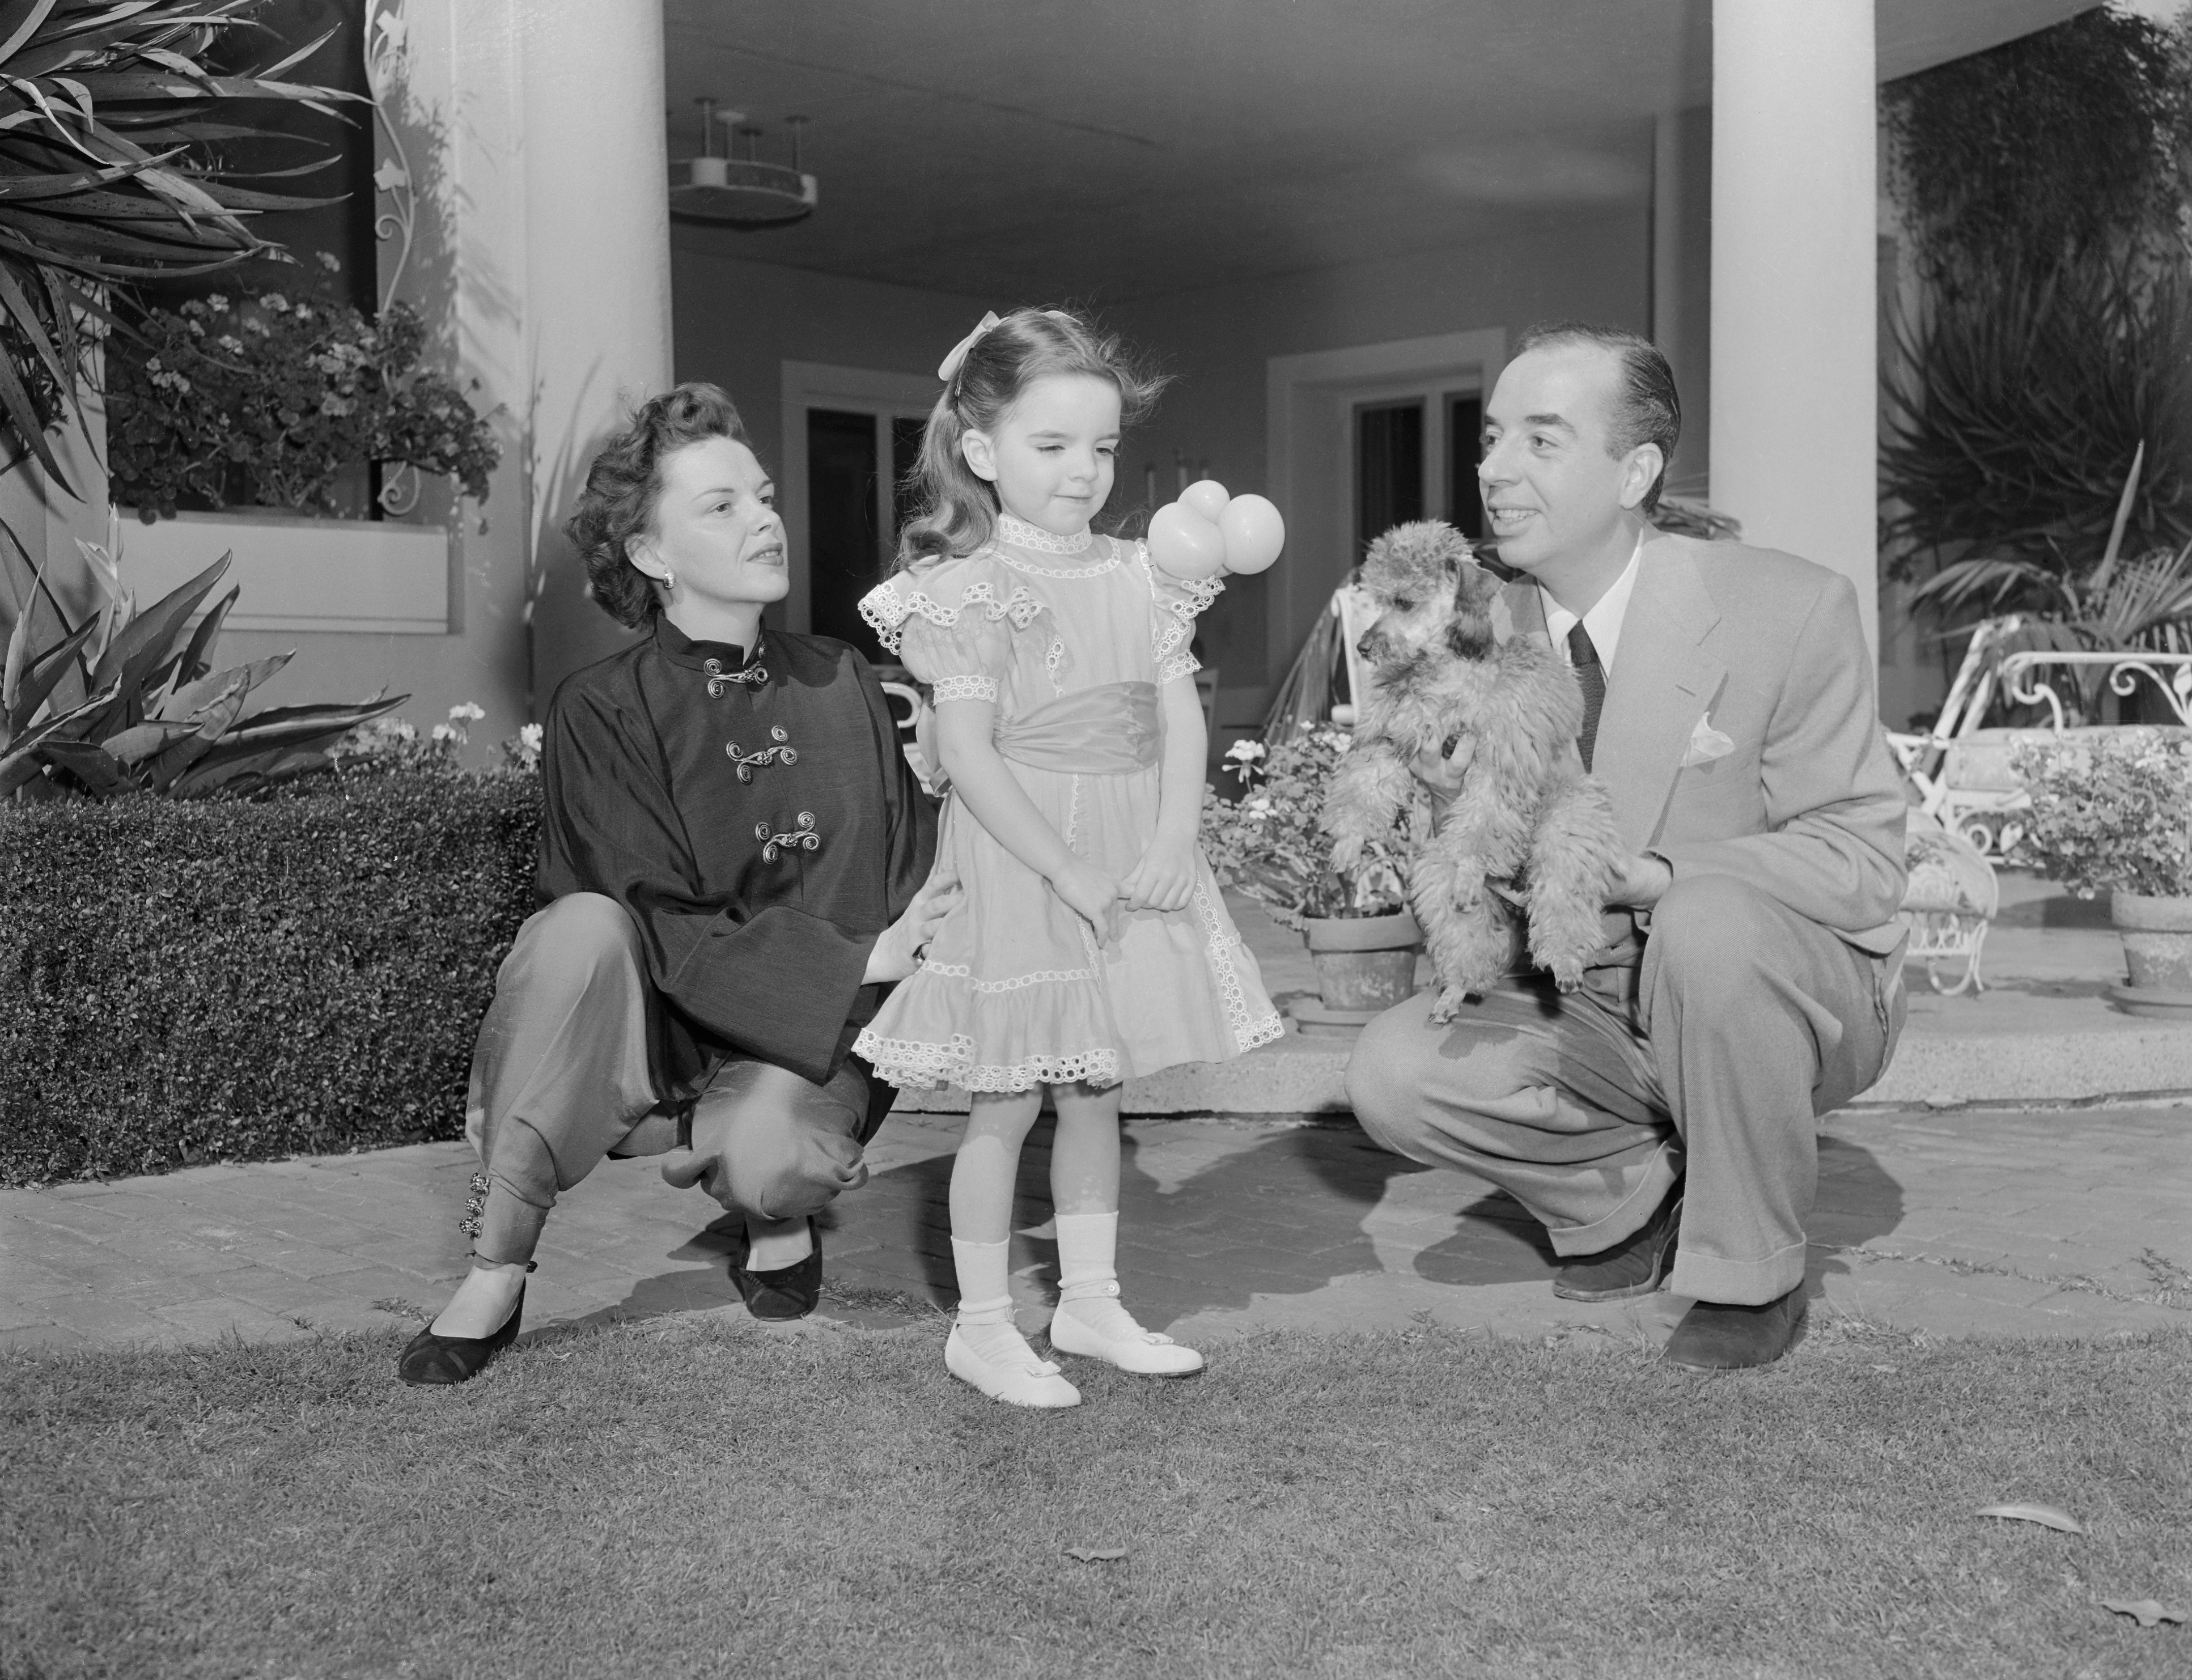 Judy Garland with her husband, director Vincente Minnelli, and their daughter Liza Minnelli.